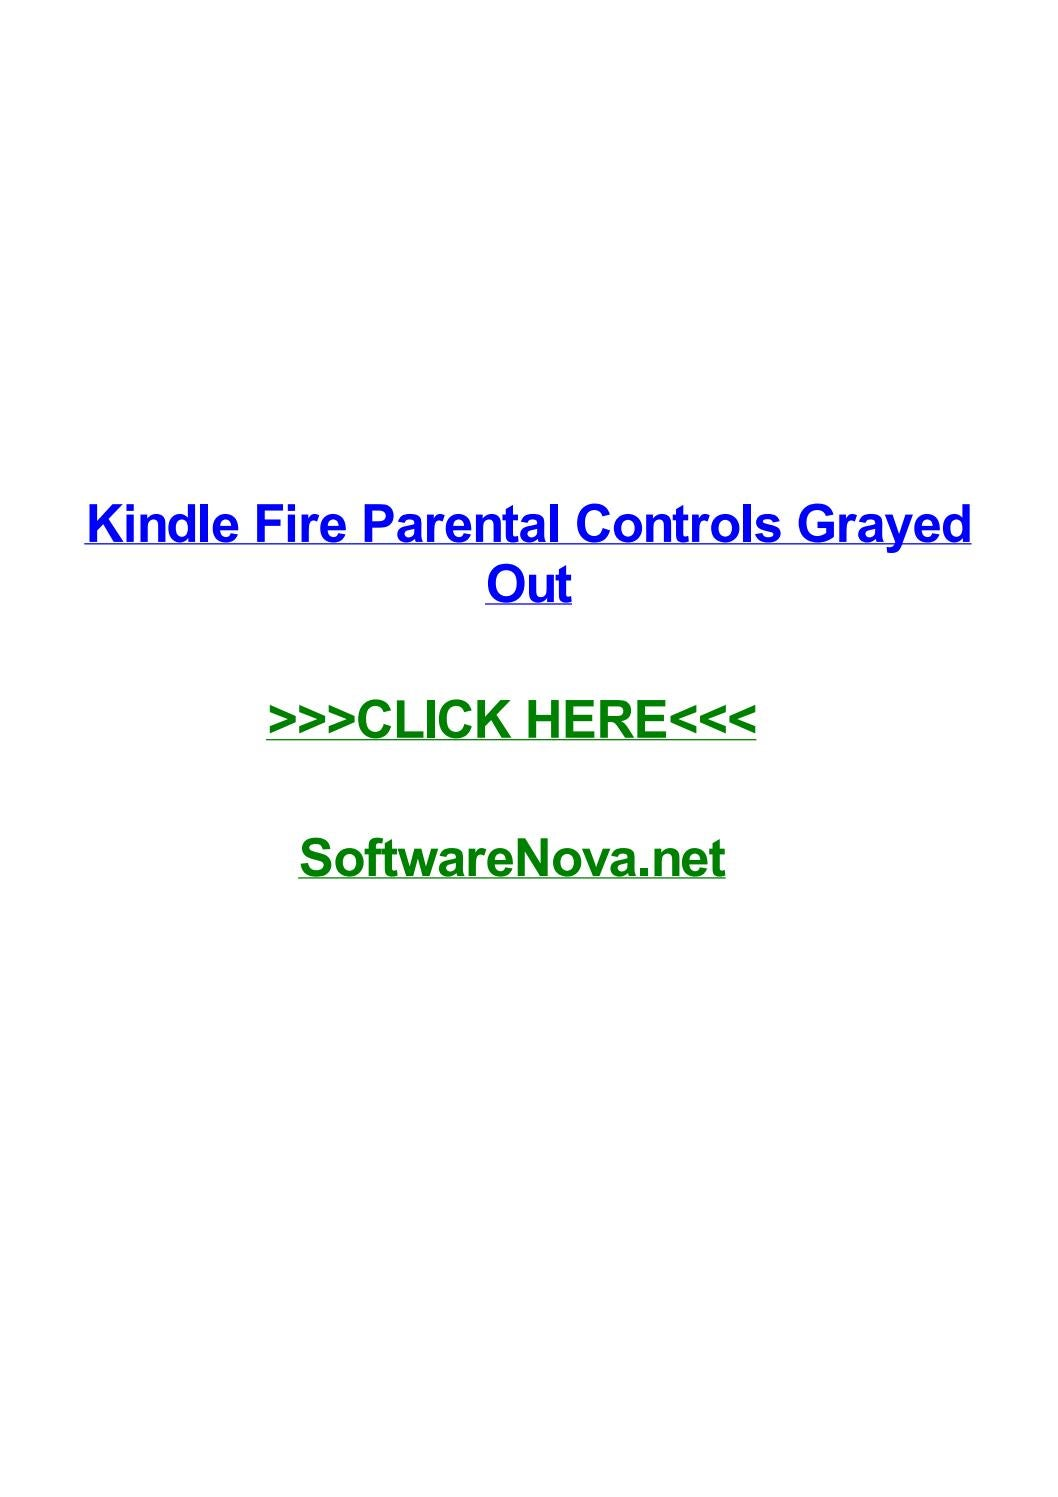 Kindle fire parental controls grayed out by stacyaggp - issuu